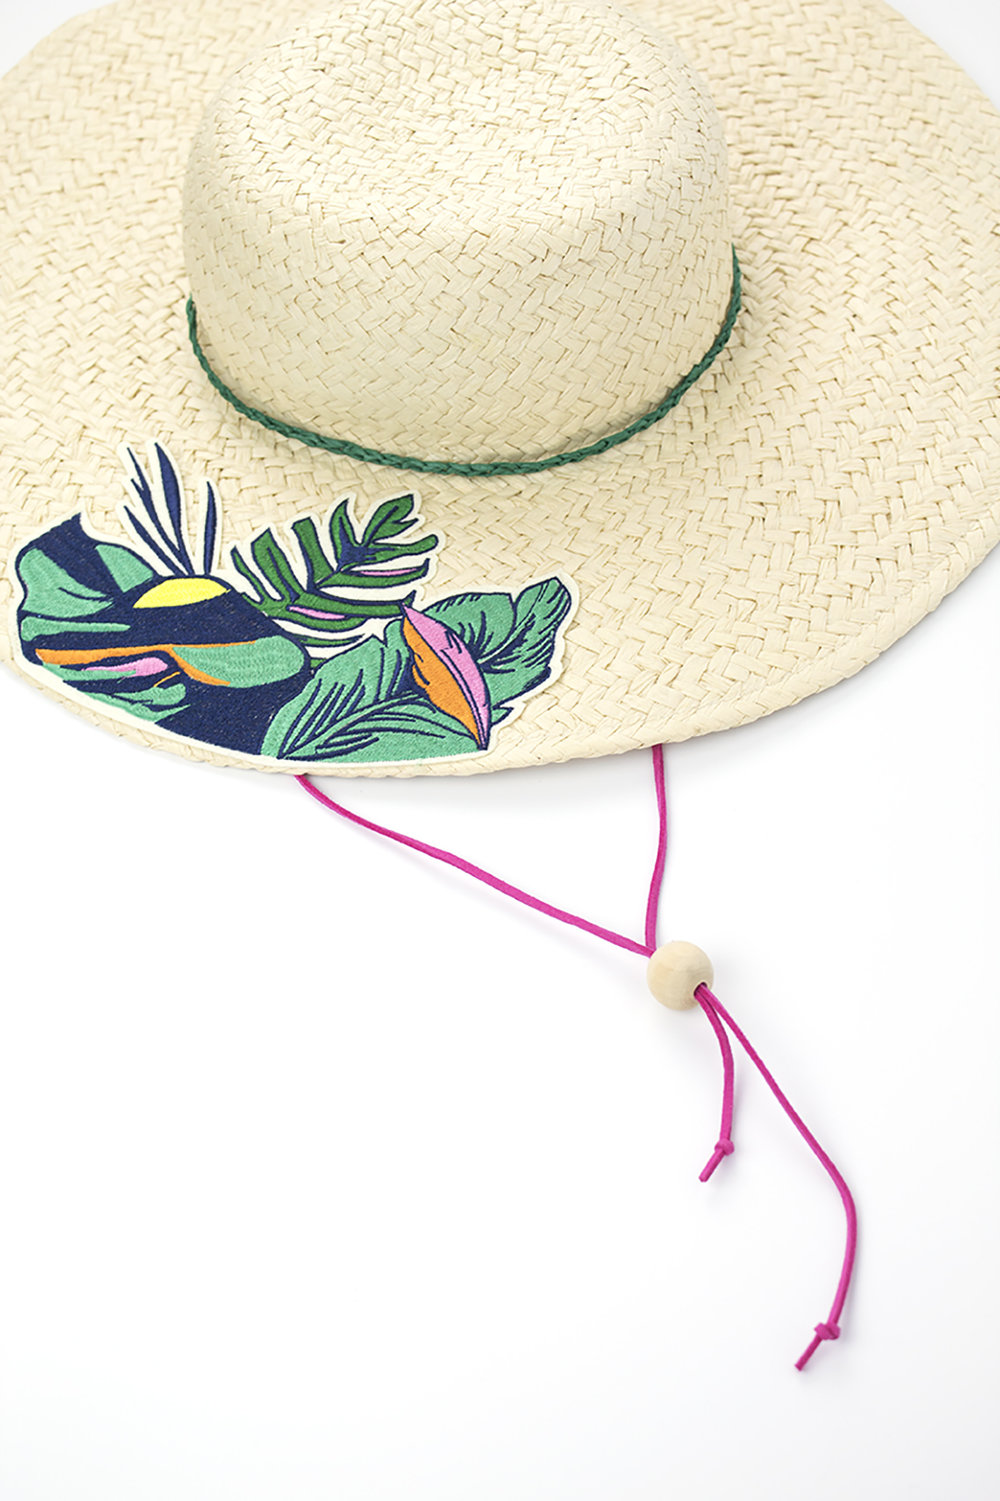 Tired of your sun hat flying off your head on vacation? Me too! Add this stampede string to your hat to keep it on your head where it belongs. Click for the DIY.